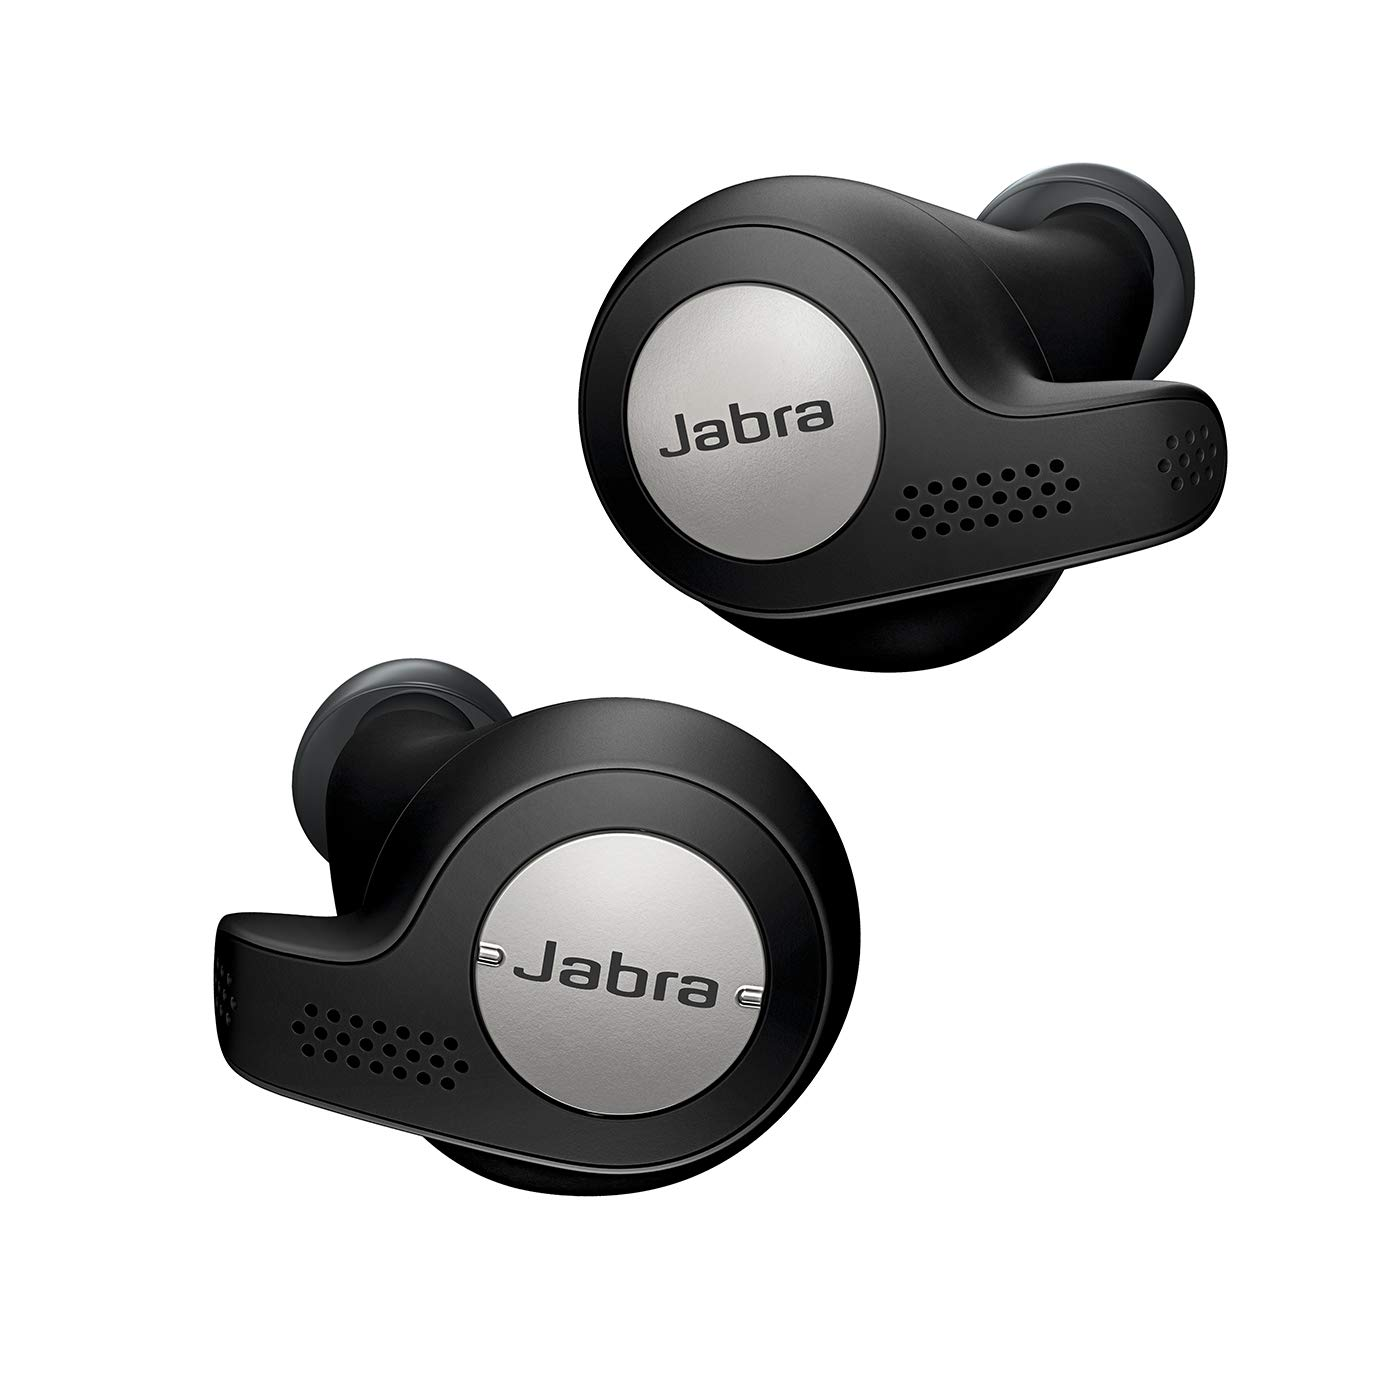 Jabra Elite Active 65t - Auriculares inalámbricos para deporte (Bluetooth® 5.0, True Wireless) con Alexa integrada, Negro y Titanio